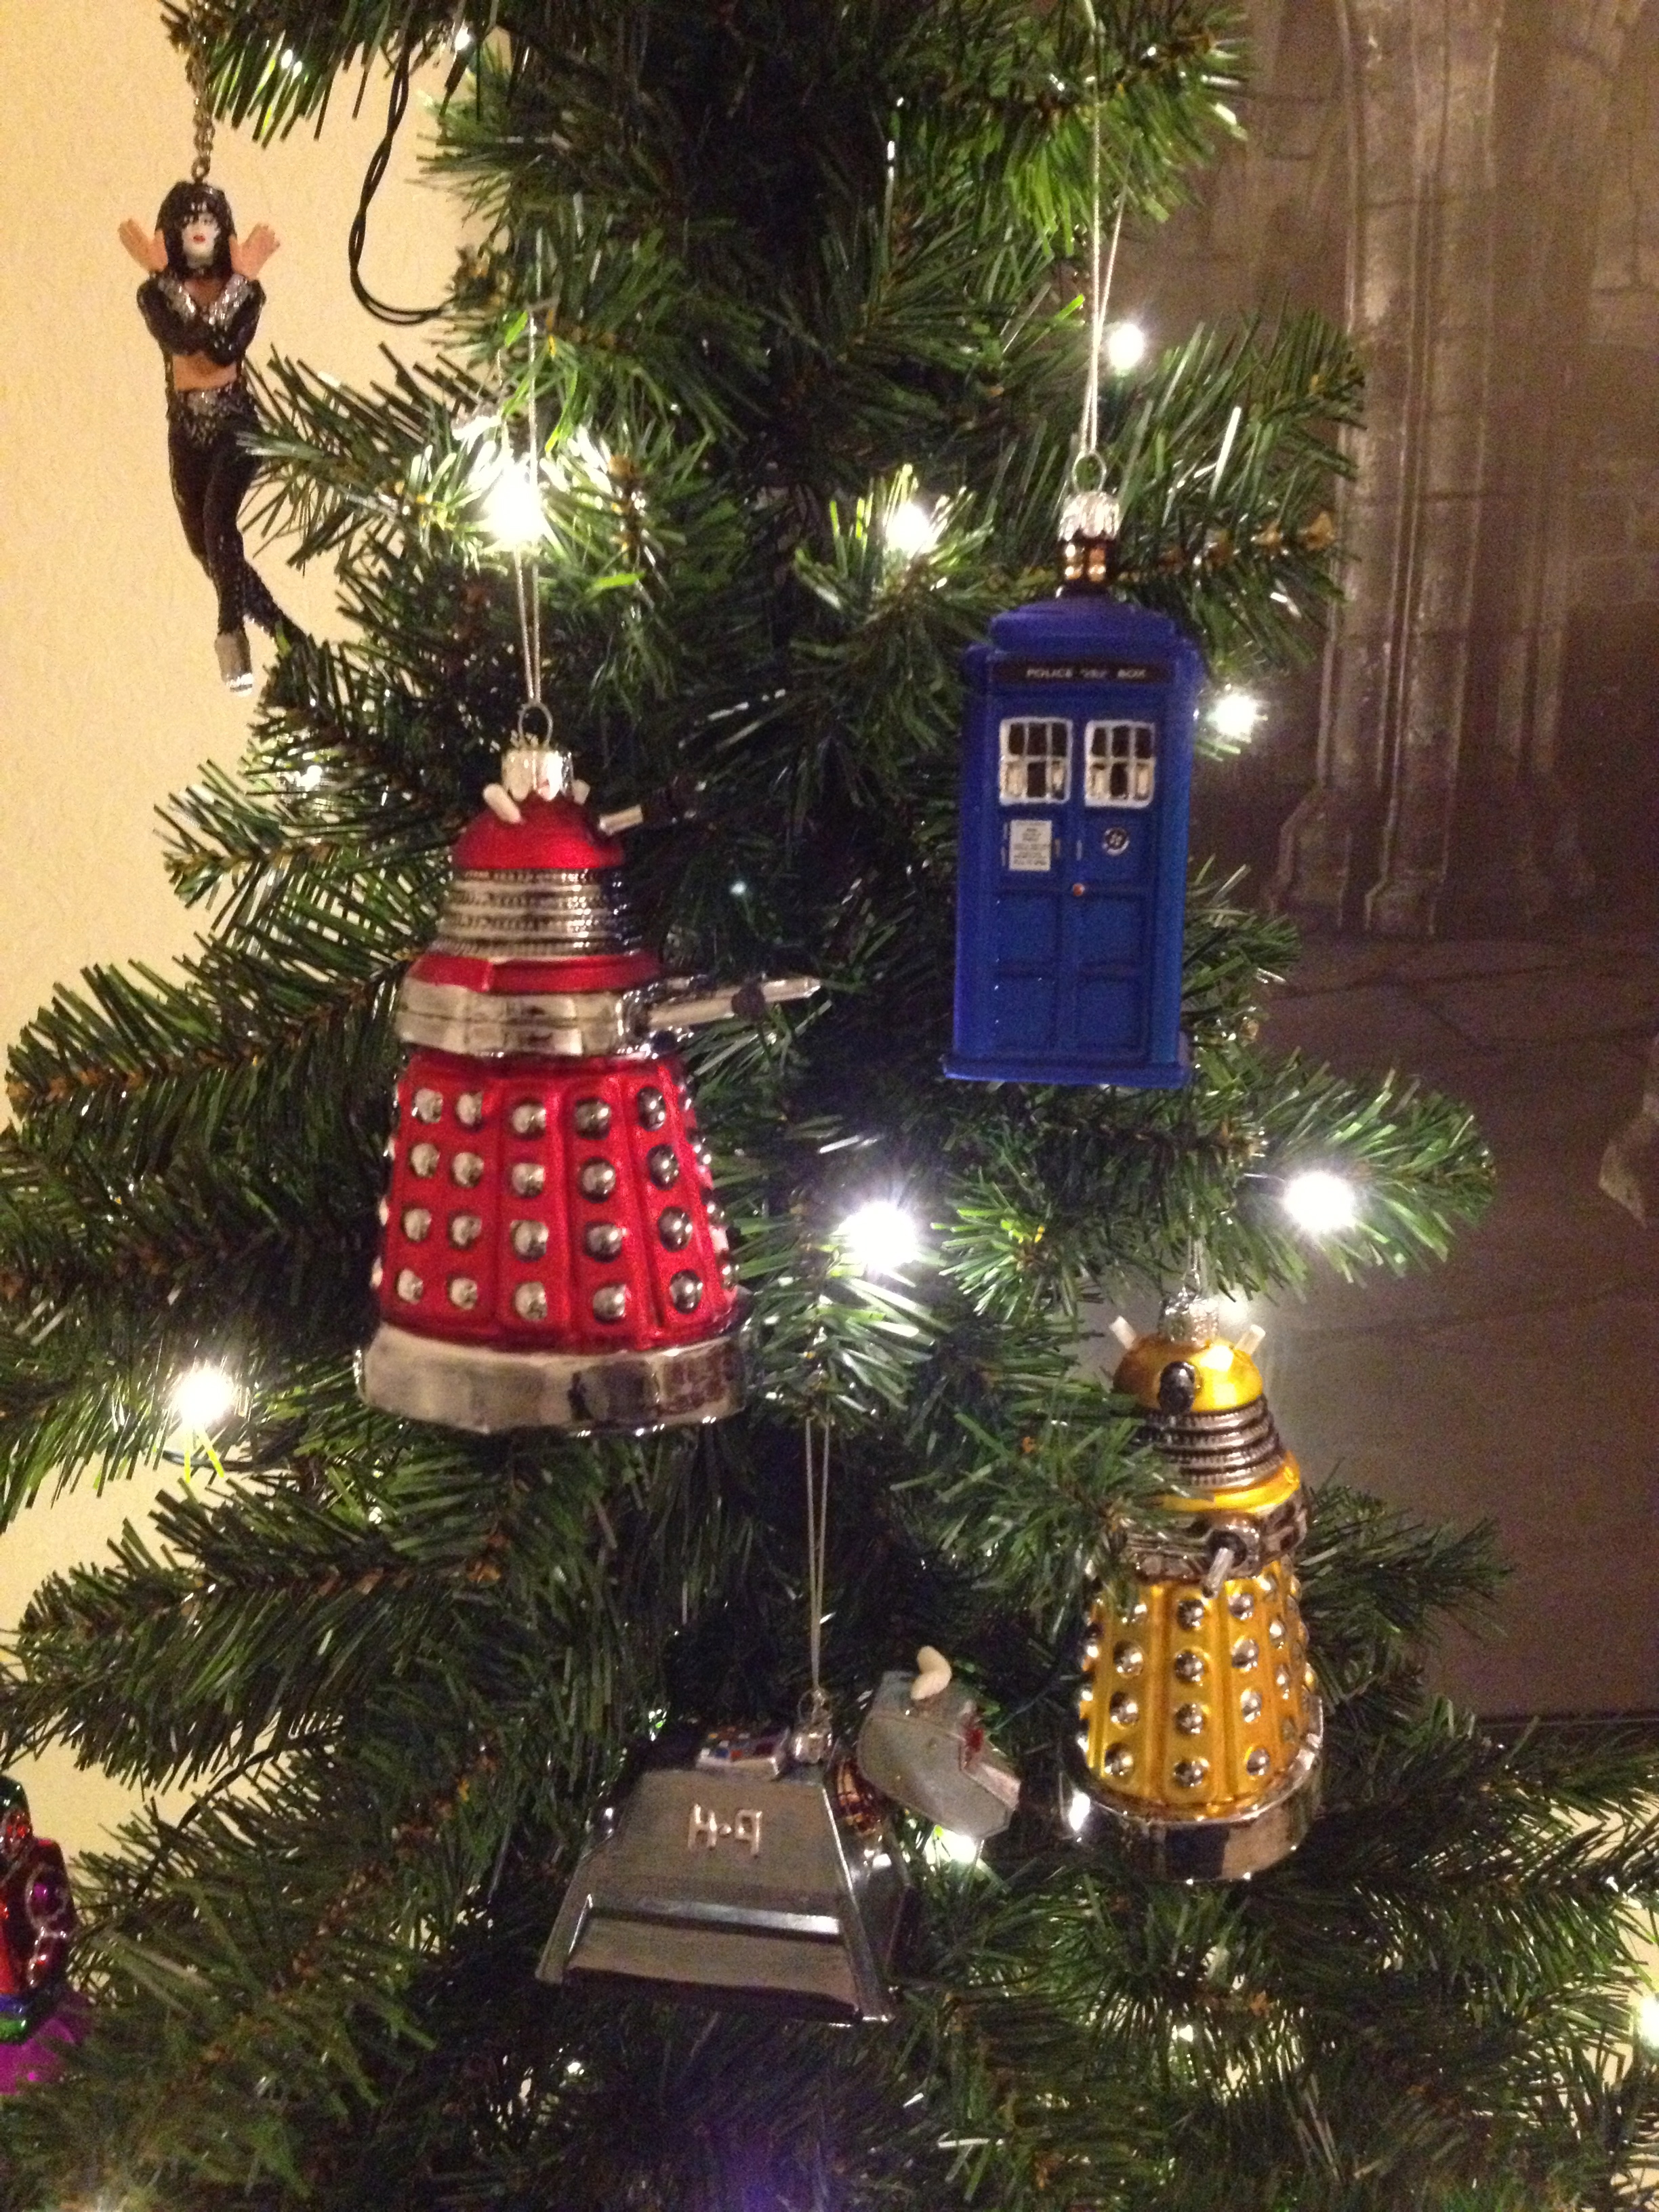 Doctor Who Christmas Tree Ornaments